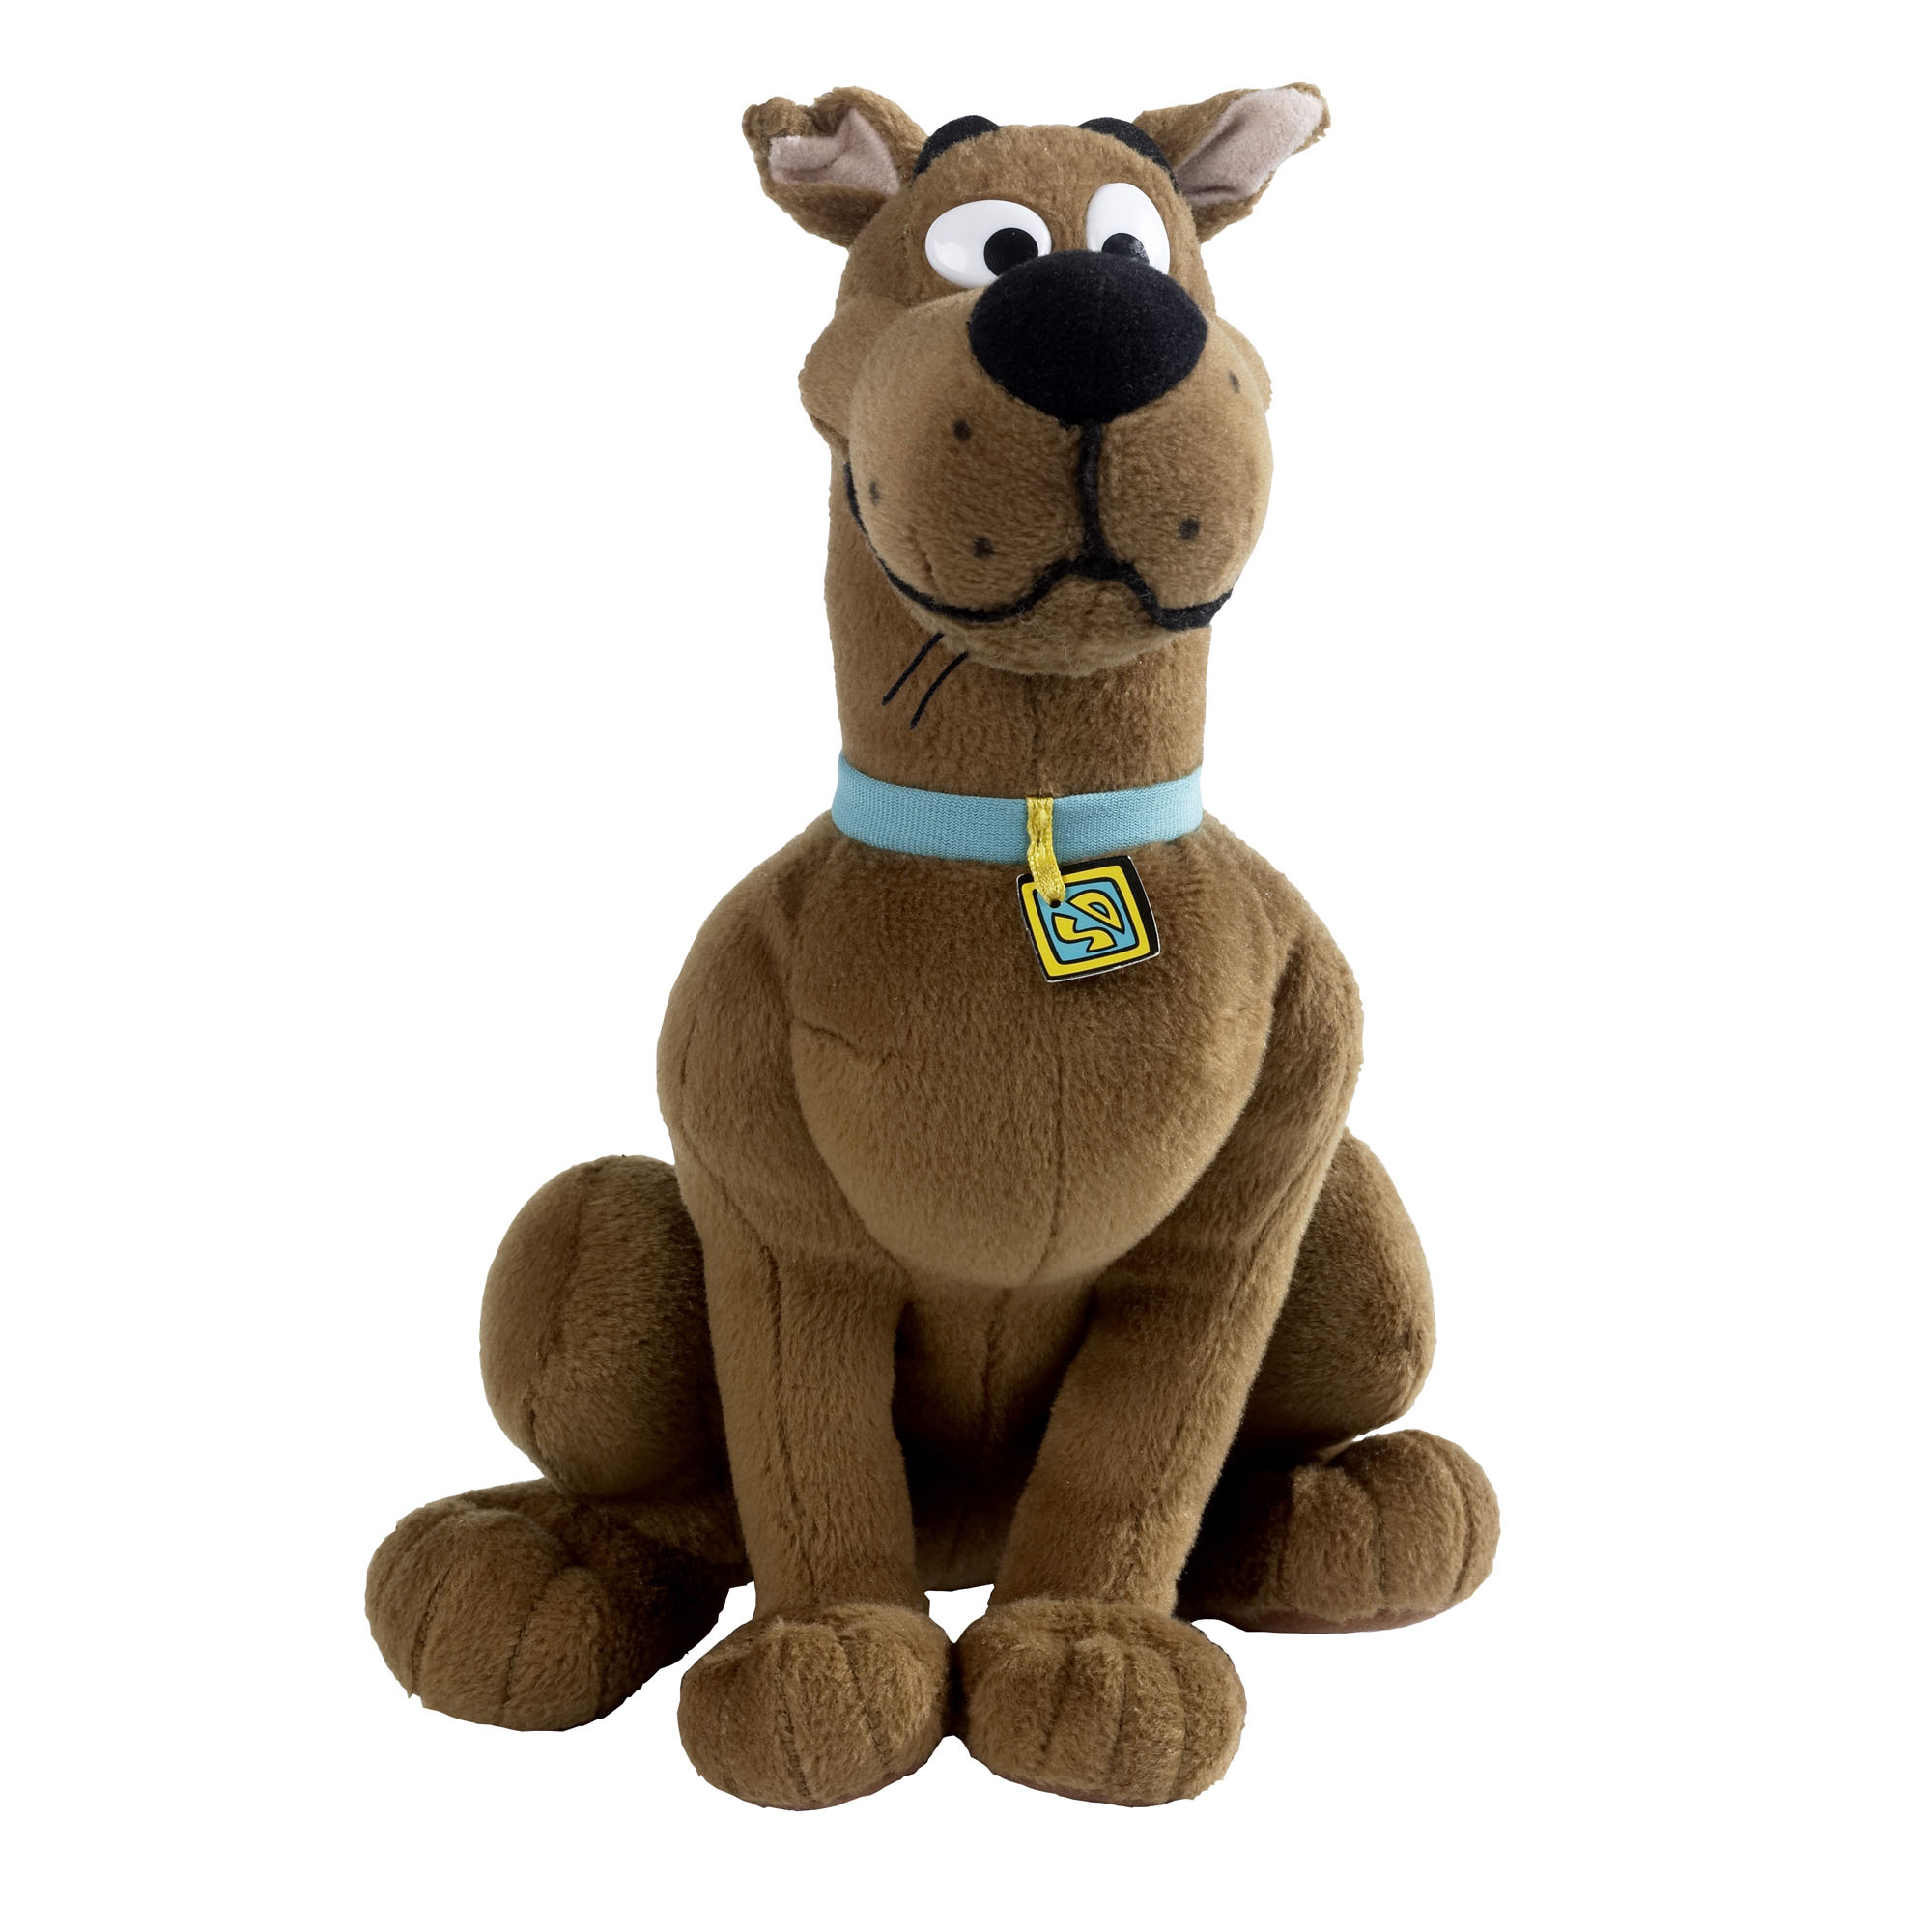 "Scooby-doo 10"" Plush Sitting Scooby"